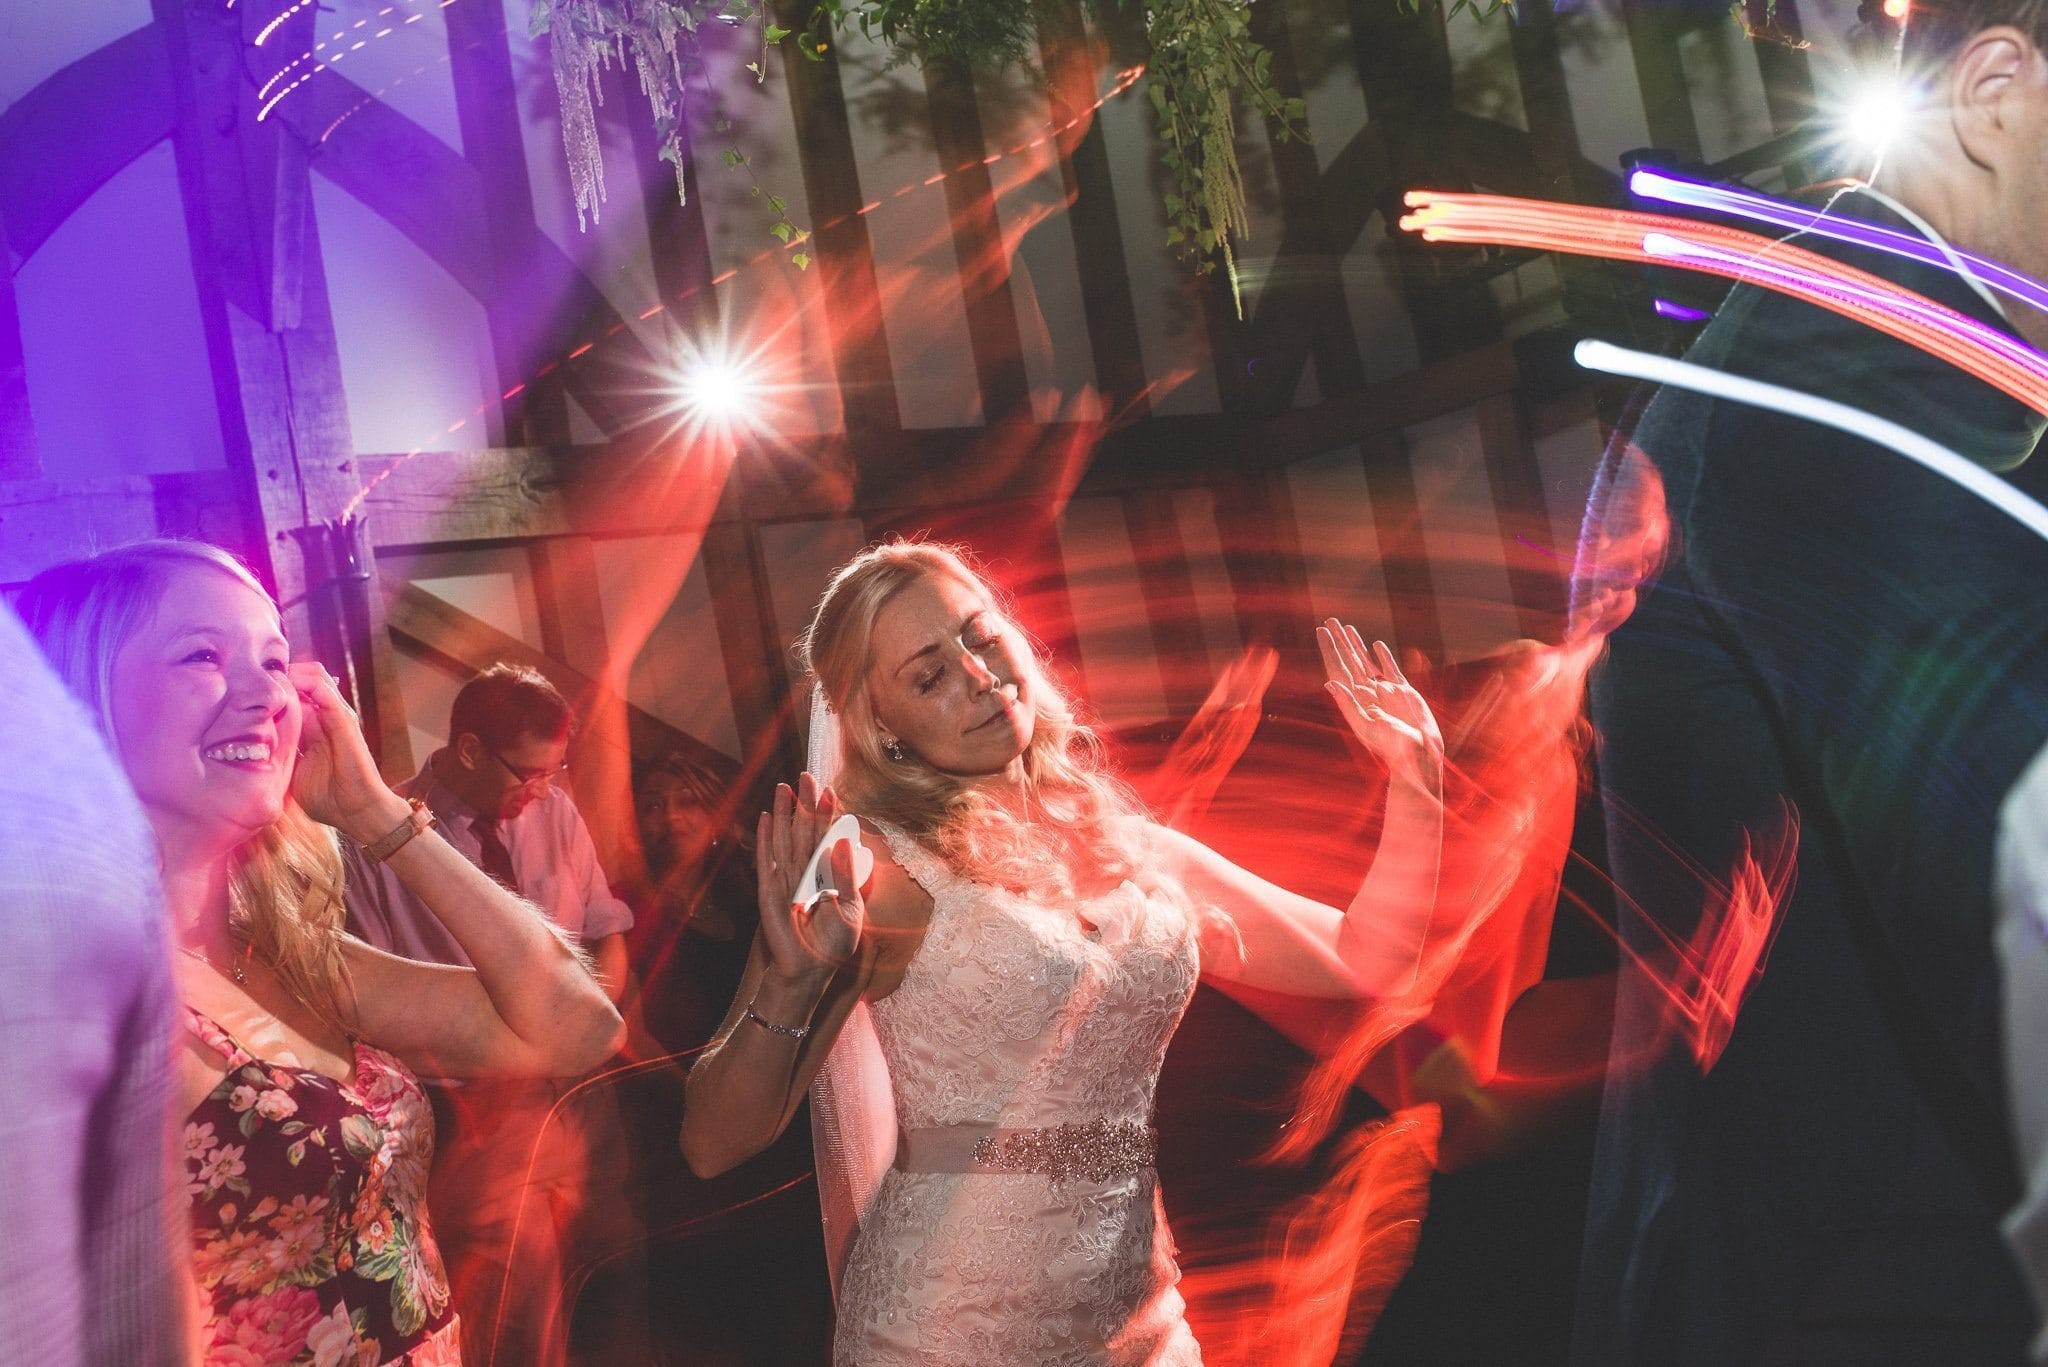 The party is in full swing and Emma shows off her moves as disco lights flash different colours on the dance floor